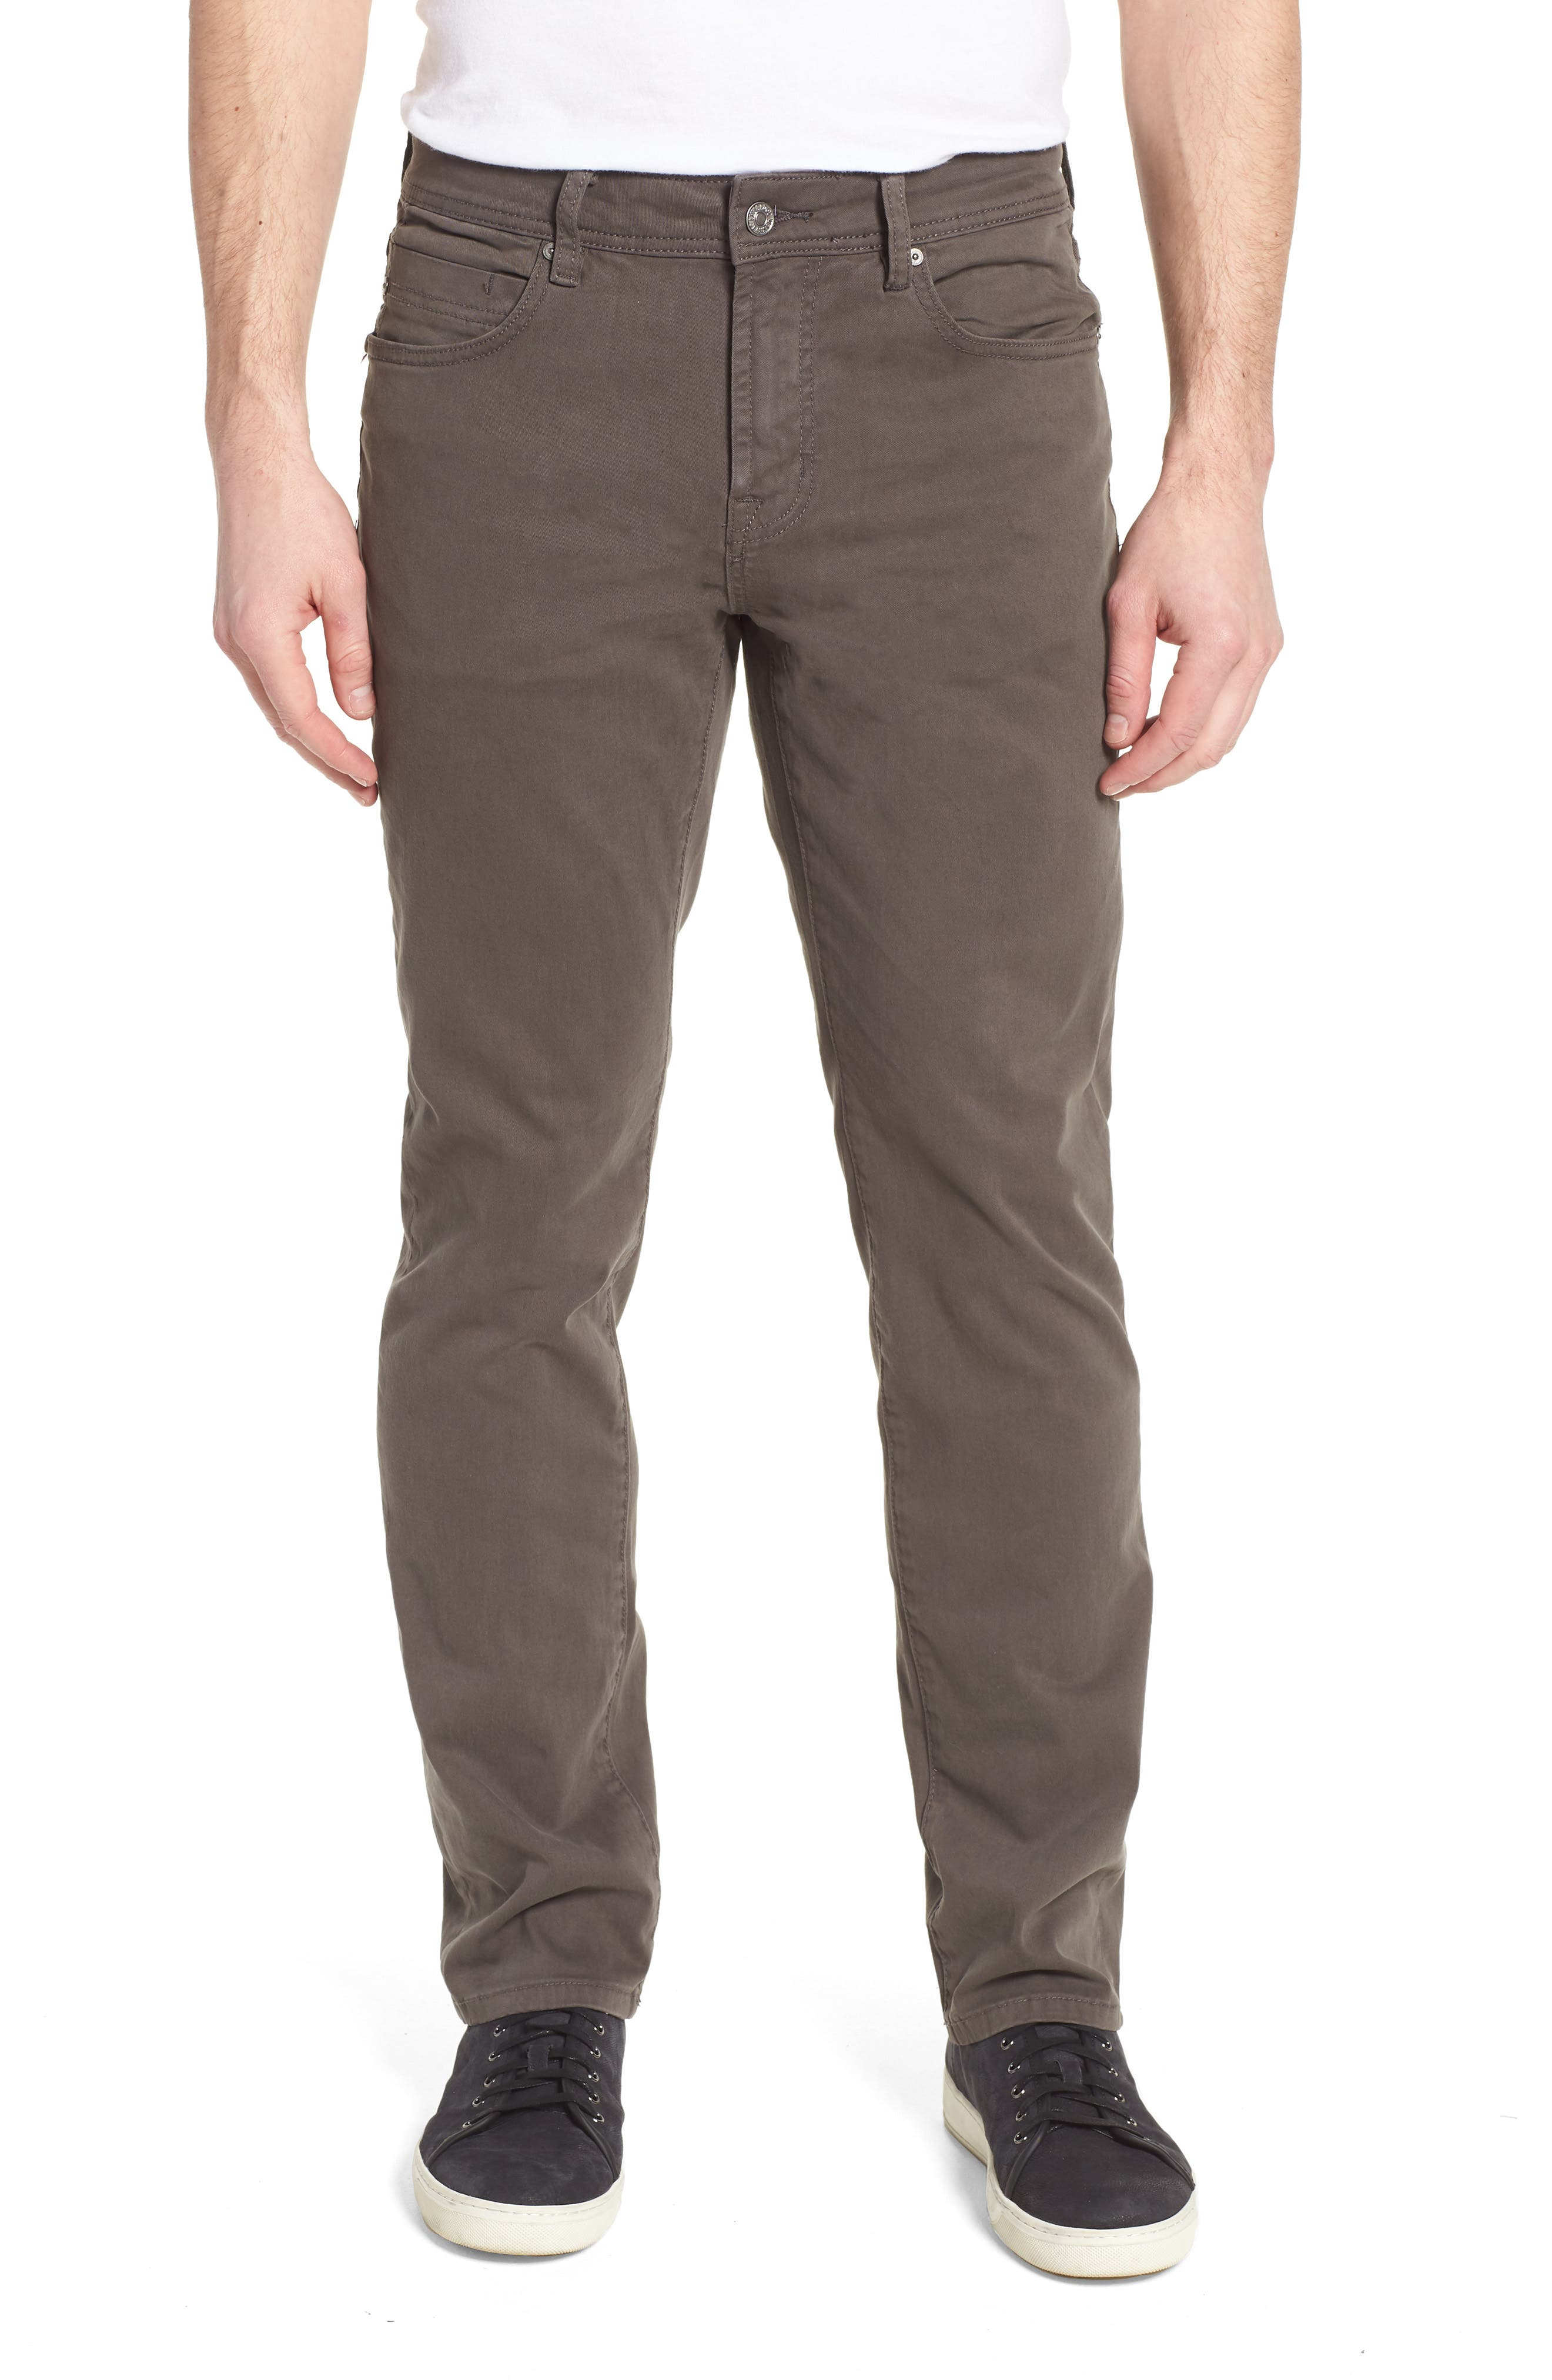 Jeans Co. Regent Relaxed Fit Jeans,                             Main thumbnail 1, color,                             Deep Earth